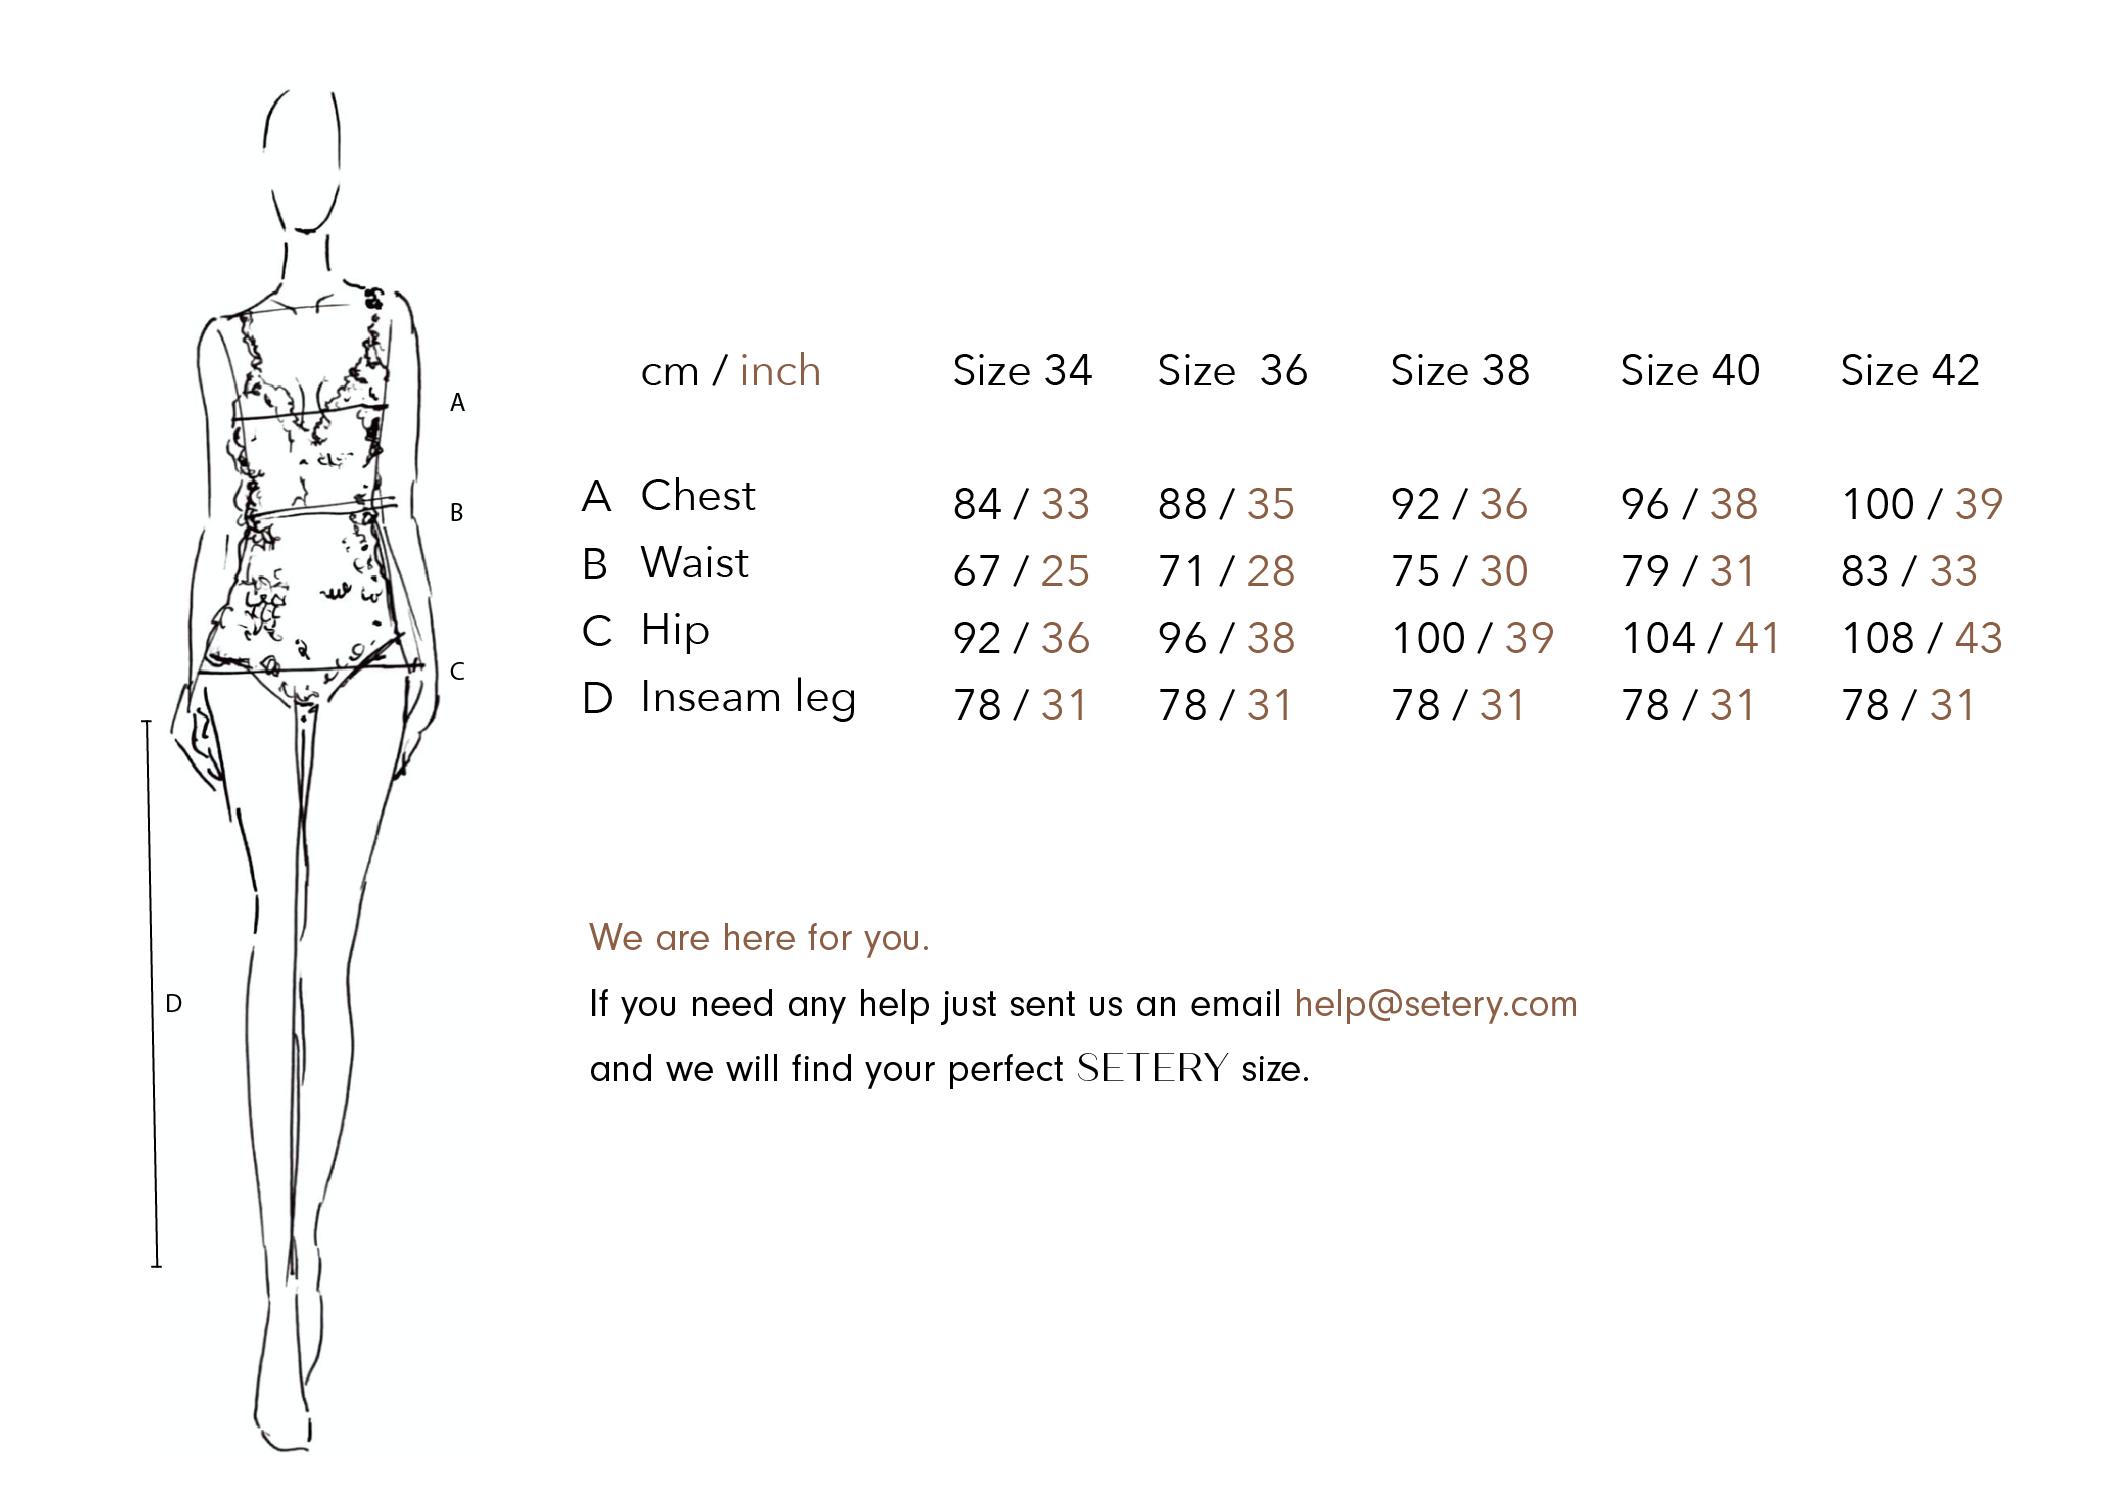 SETERY | Sustainable Fashion Size Guide